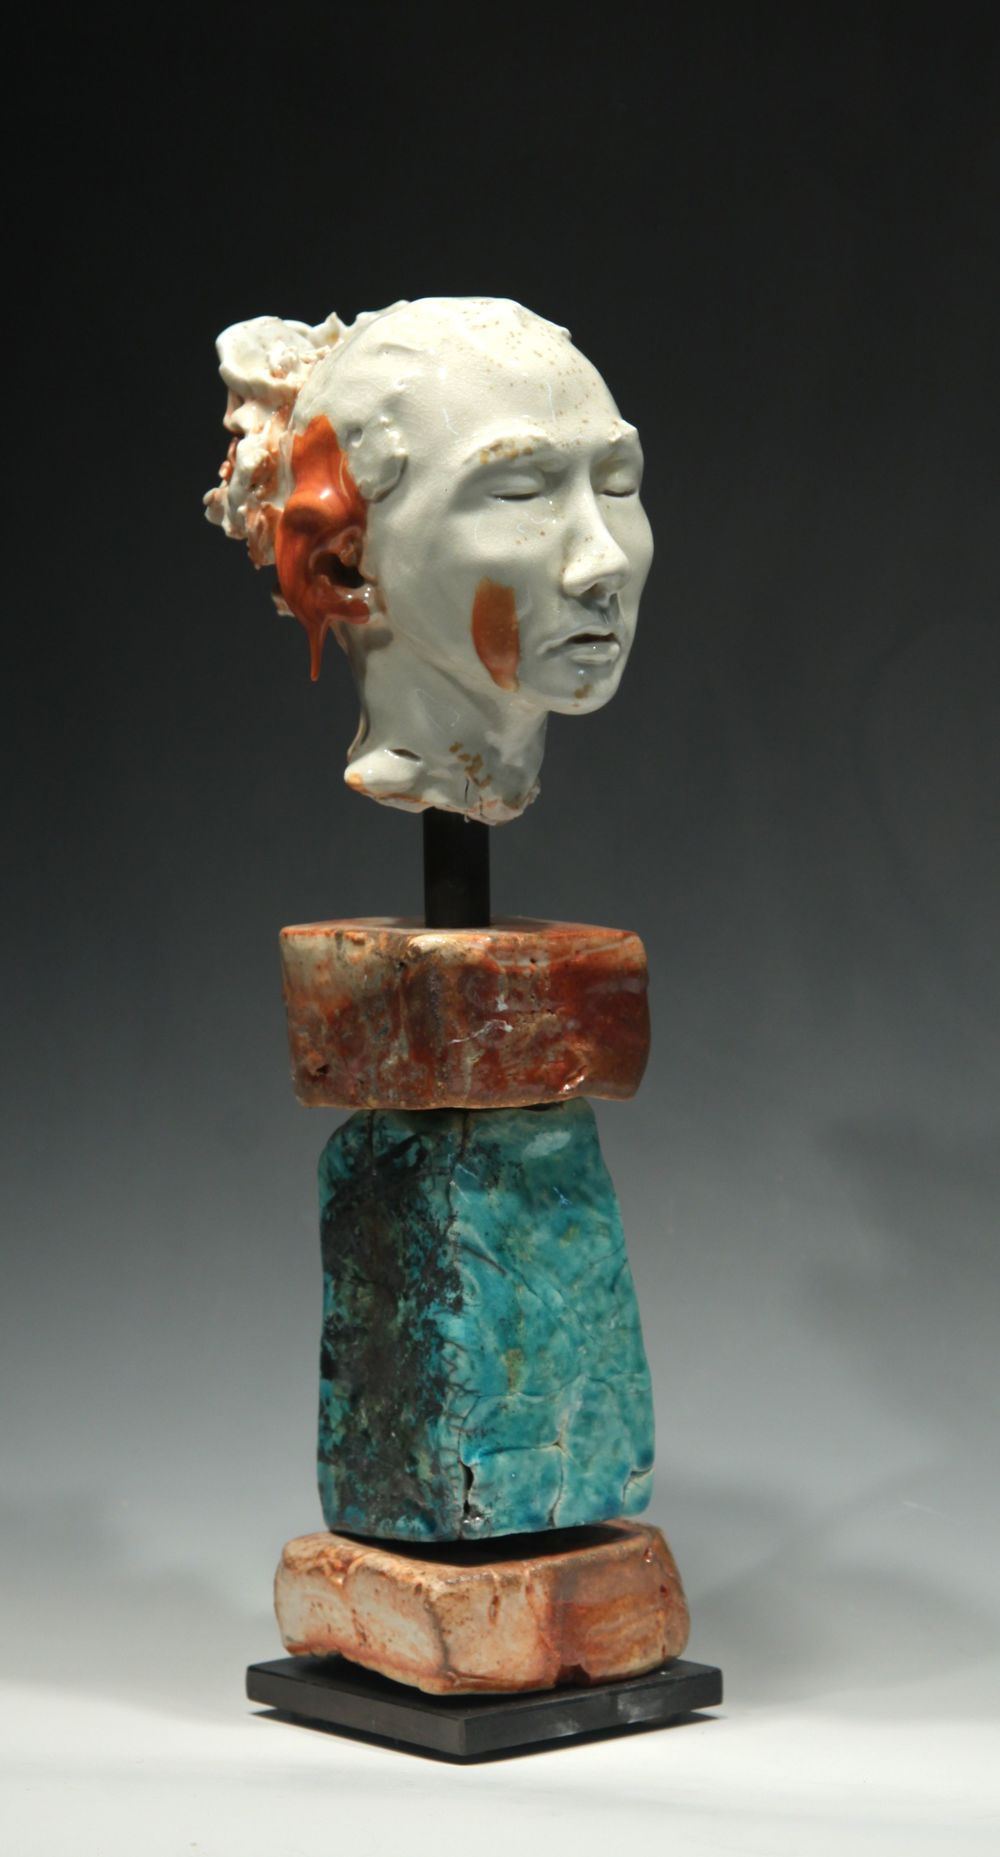 Woman's Head with Red Drip on Ear, noborigama-fired porcelain.  Head Sculpture